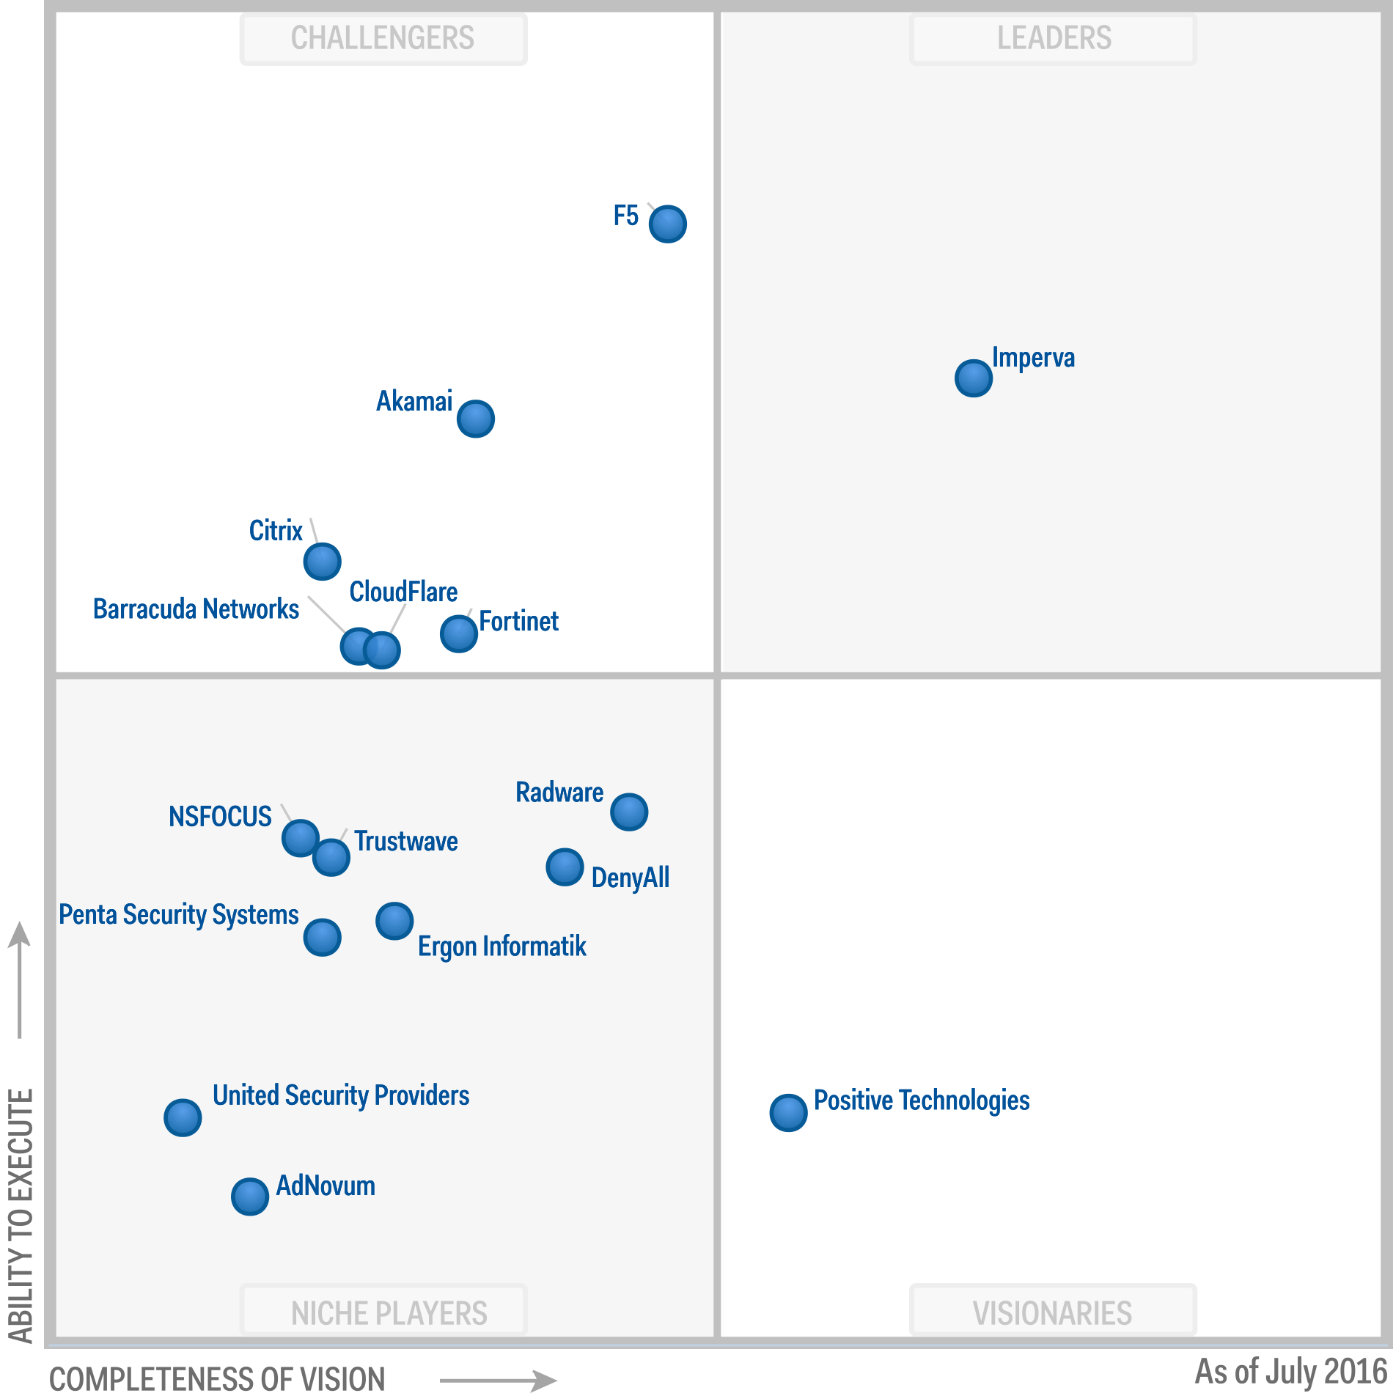 Magic Quadrant for Web Application Firewalls 2016 (G00290000)